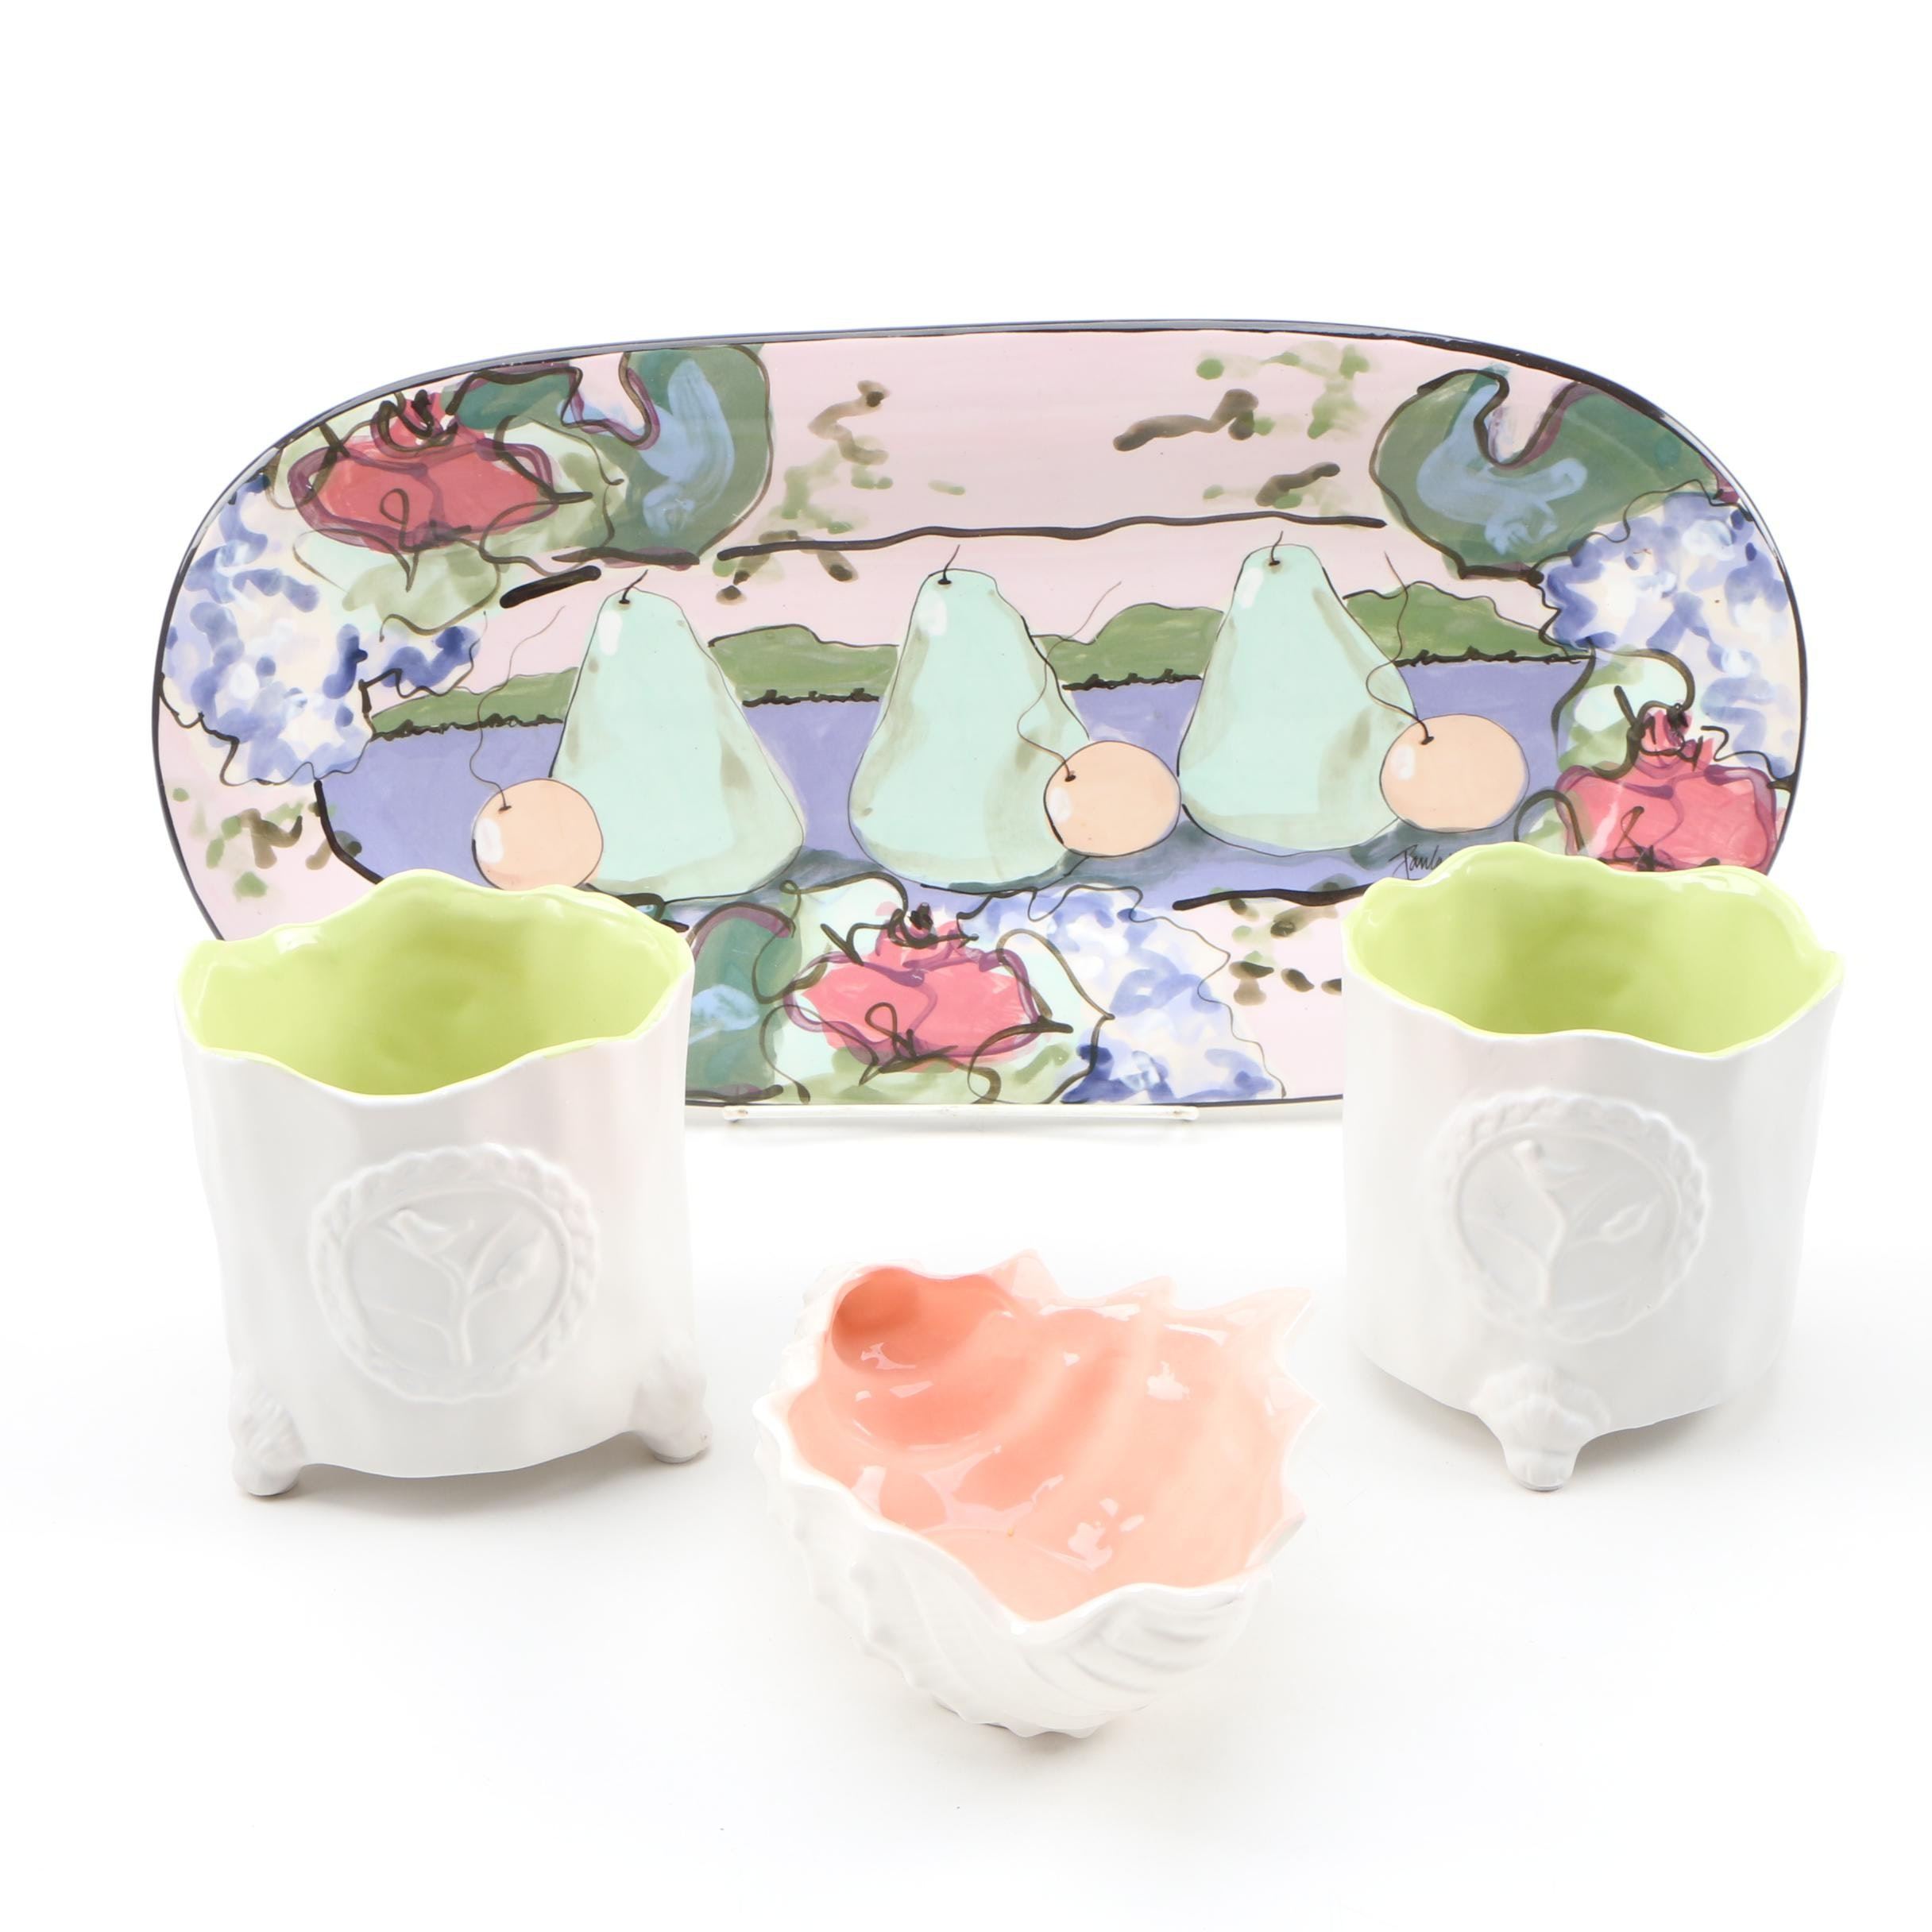 Hand-Painted Ceramic Platter with Cachepots and Fitz and Floyd Shell Bowl